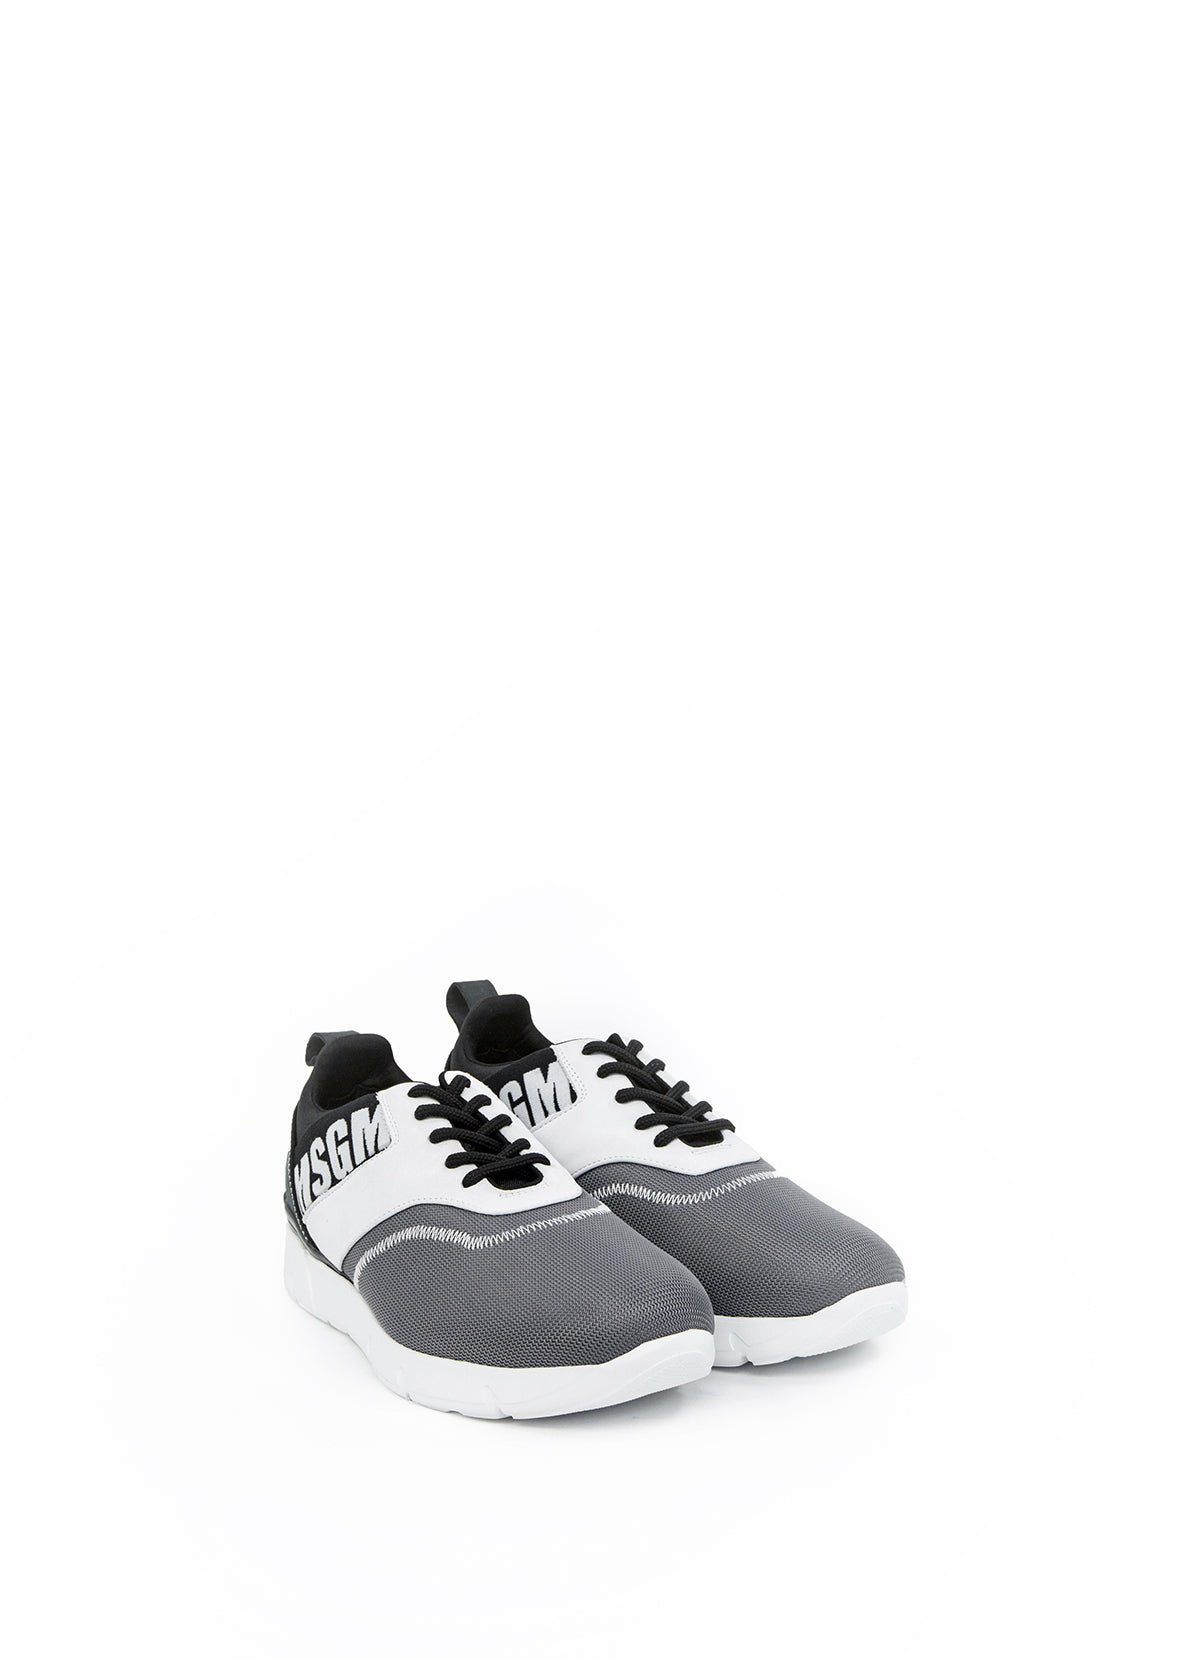 GORE LACED-UP SNEAKERS